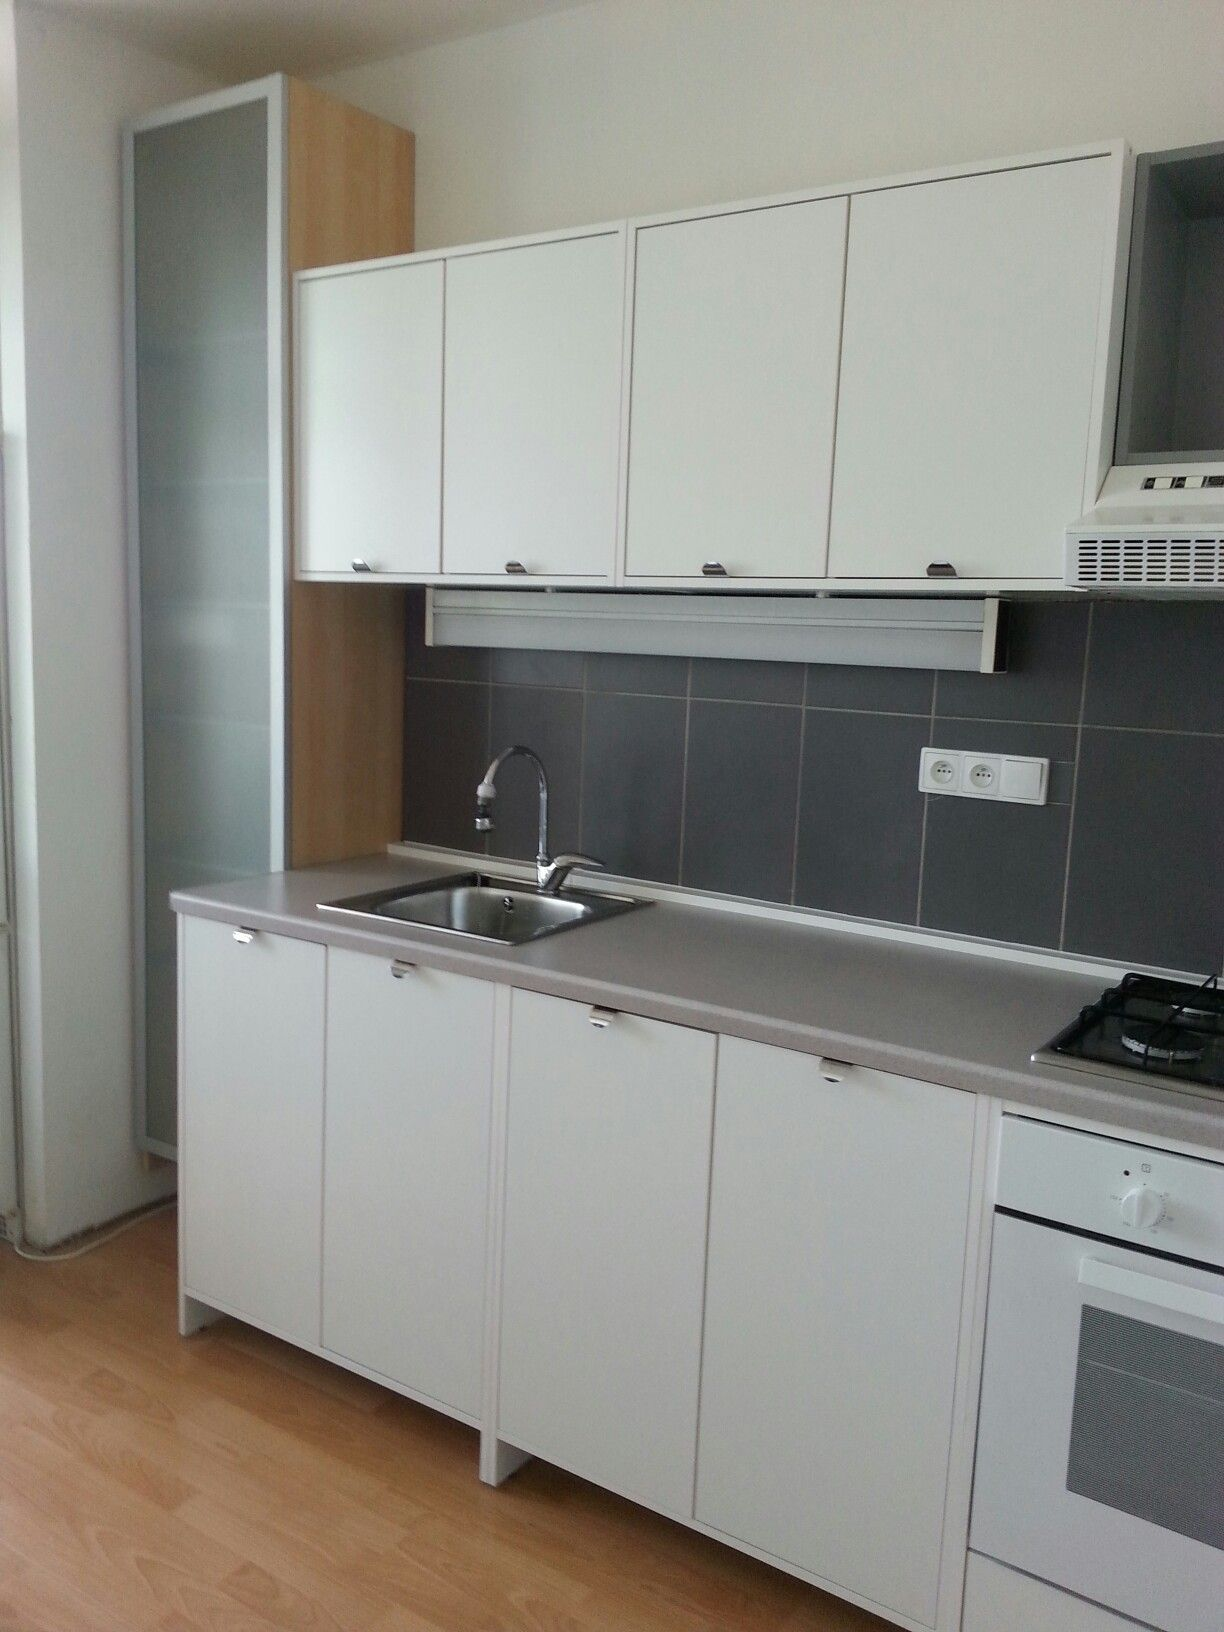 Fyndig Küche Fyndig Ikea Kitchens In 2019 Kitchen Cabinets Kitchen Und